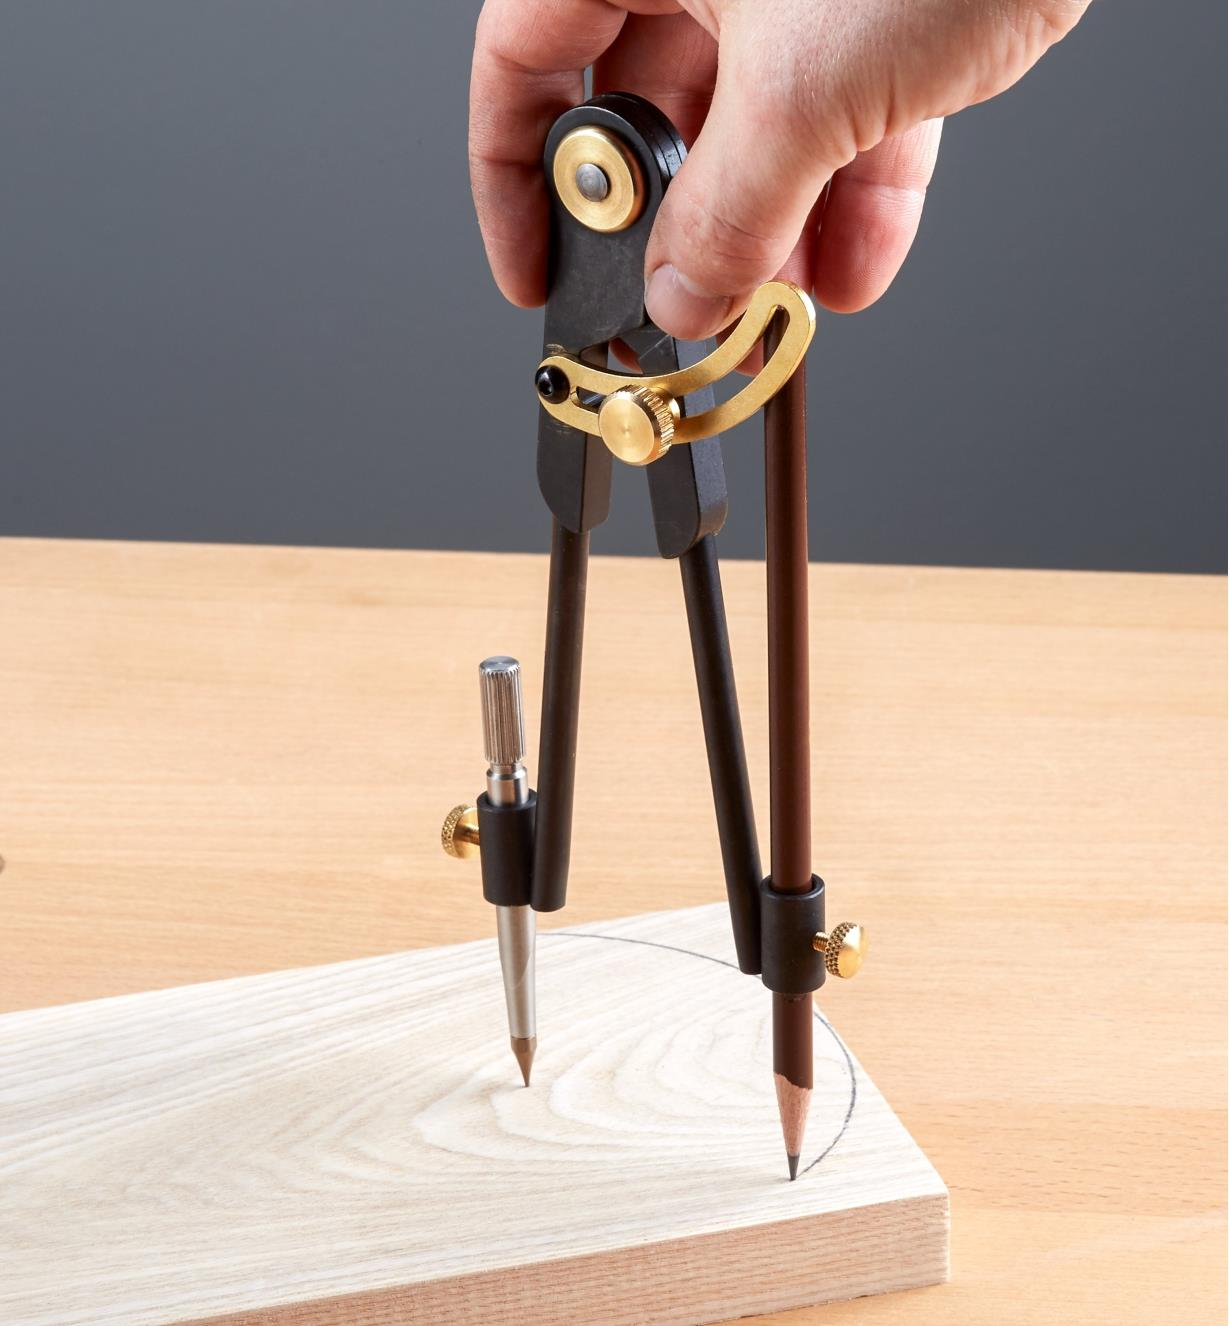 Scribing a circle onto a wooden workpiece using a bench compass